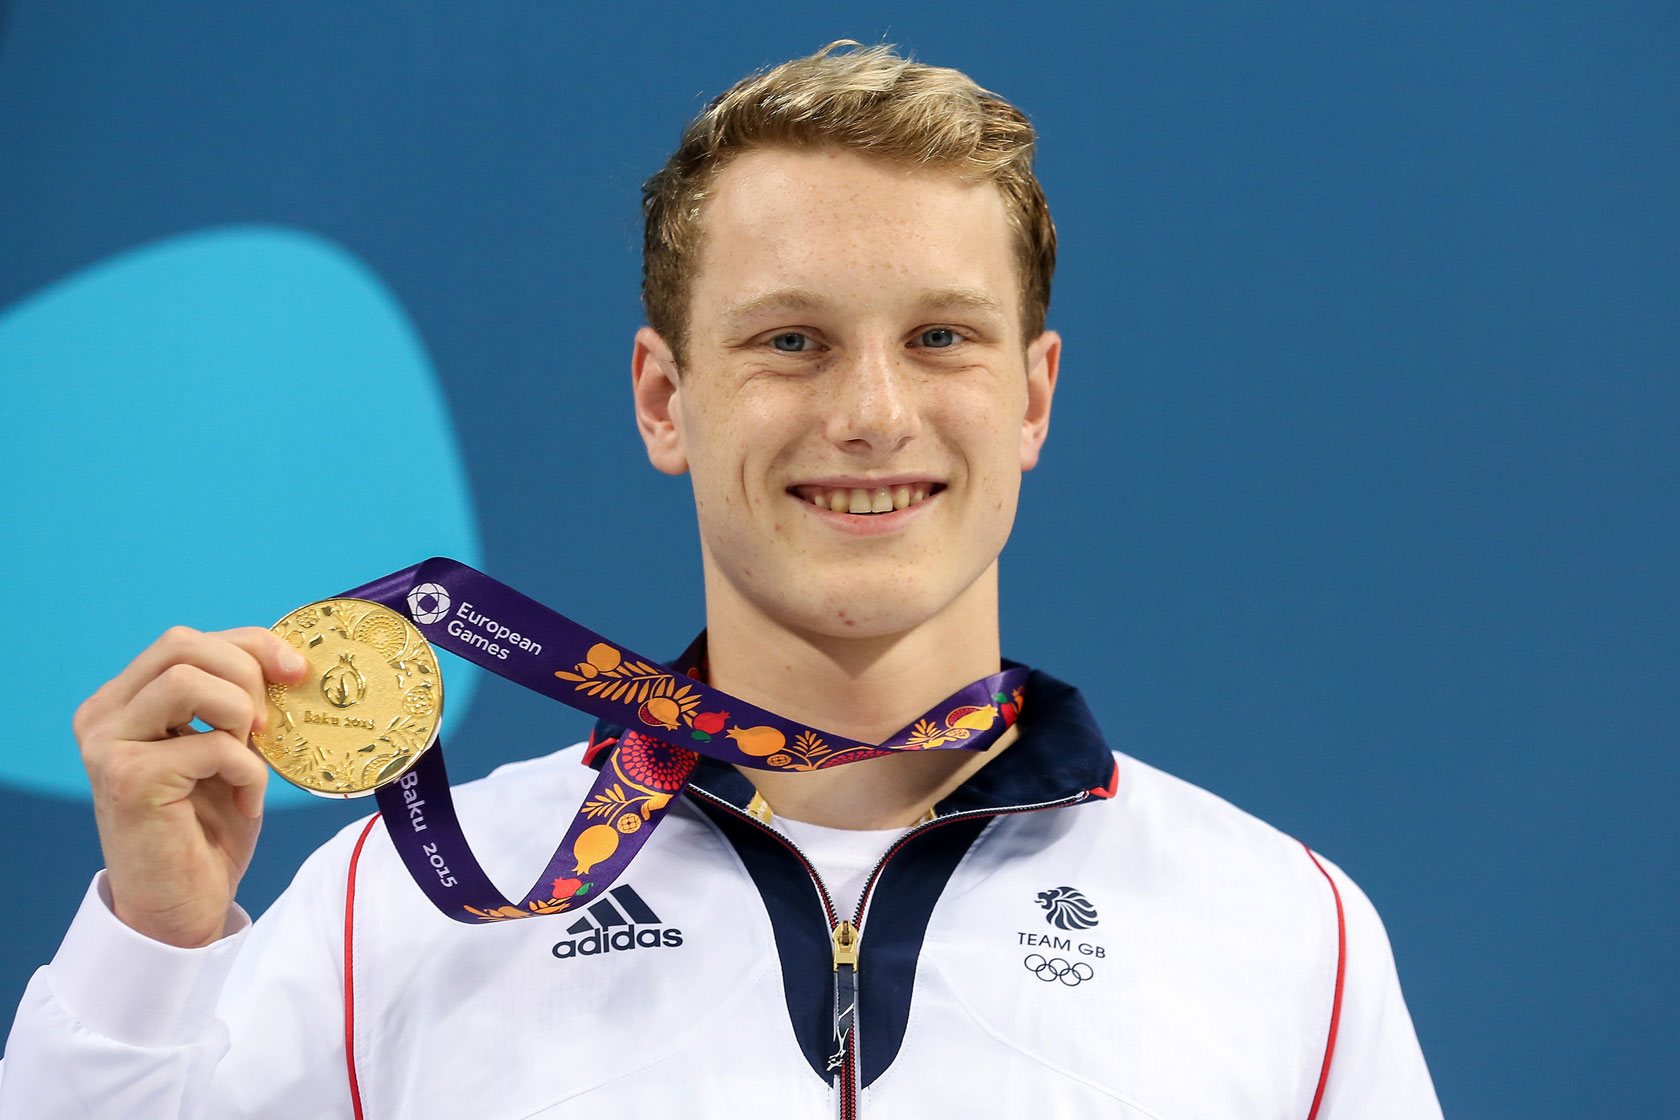 Luke Greenbank gold medal Baku 2015